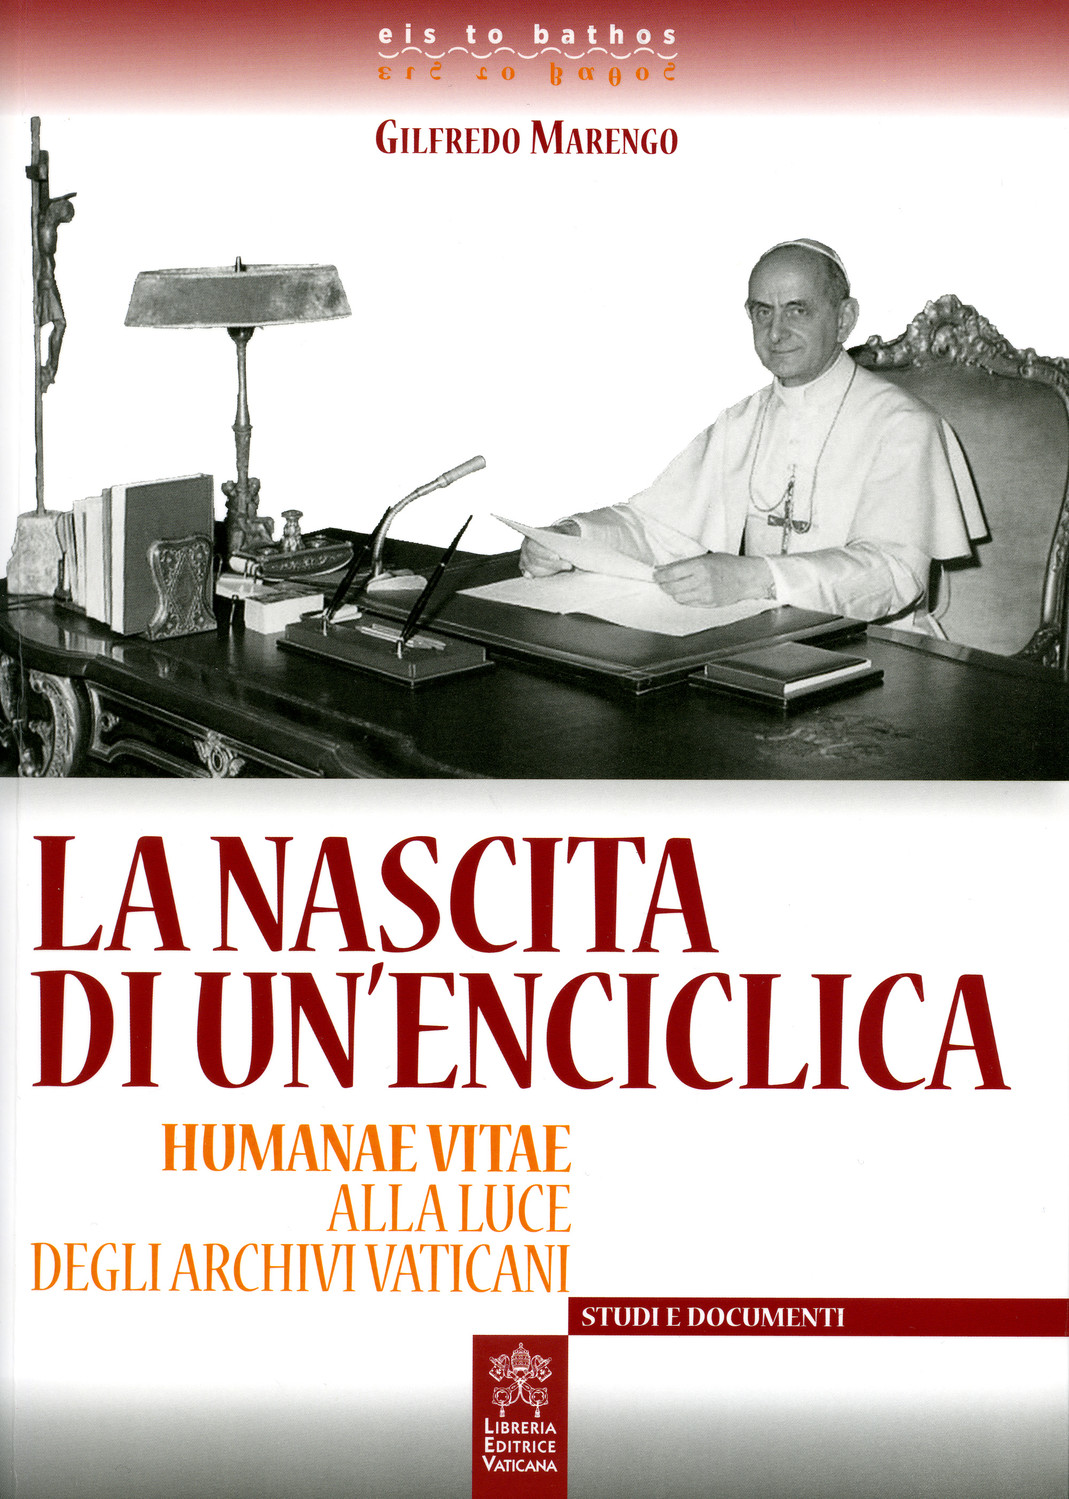 "This is the cover of the Italian book, ""The Birth of an Encyclical: 'Humanae Vitae' in the Light of the Vatican Archives."" The book is by Monsignor Gilfredo Marengo, who was given special access by Pope Francis to research ""Humane Vitae"" in the Vatican Archives."